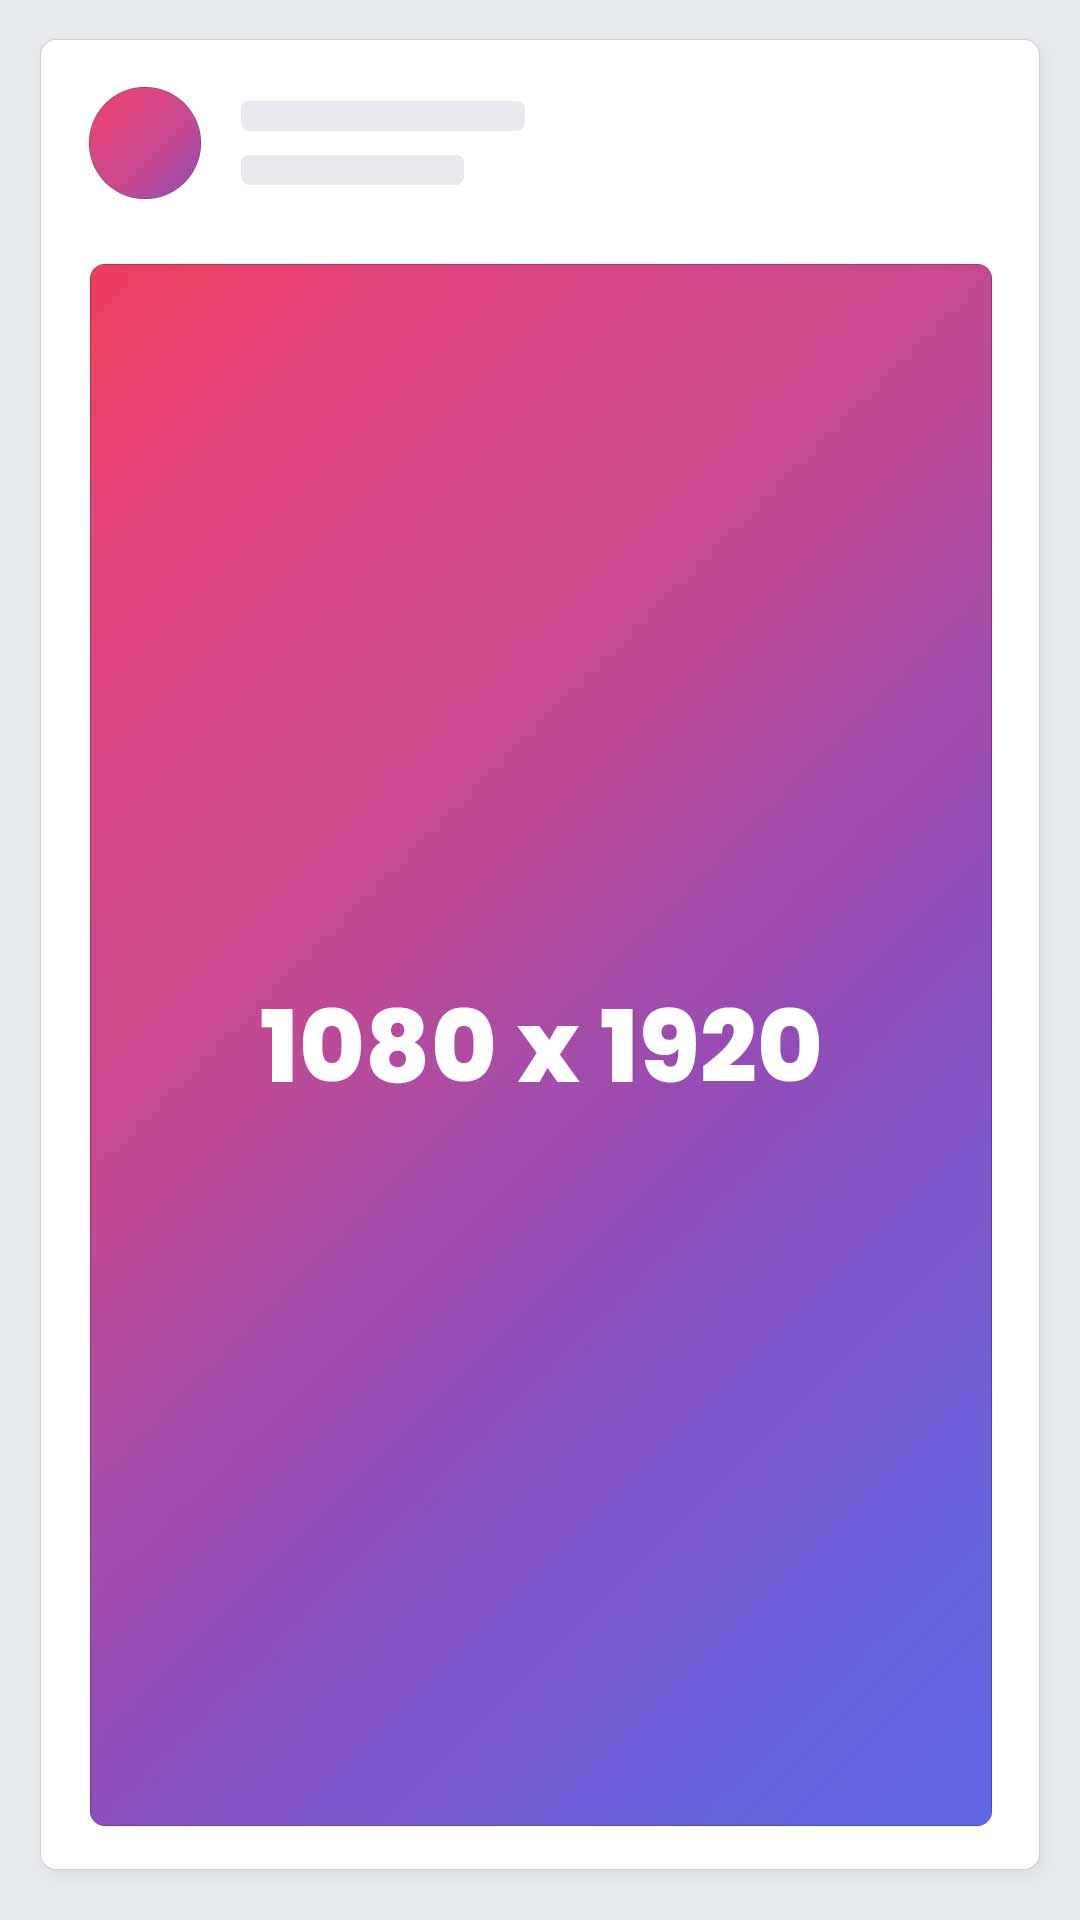 Instagram Vertical Video Ad Size / Dimensions